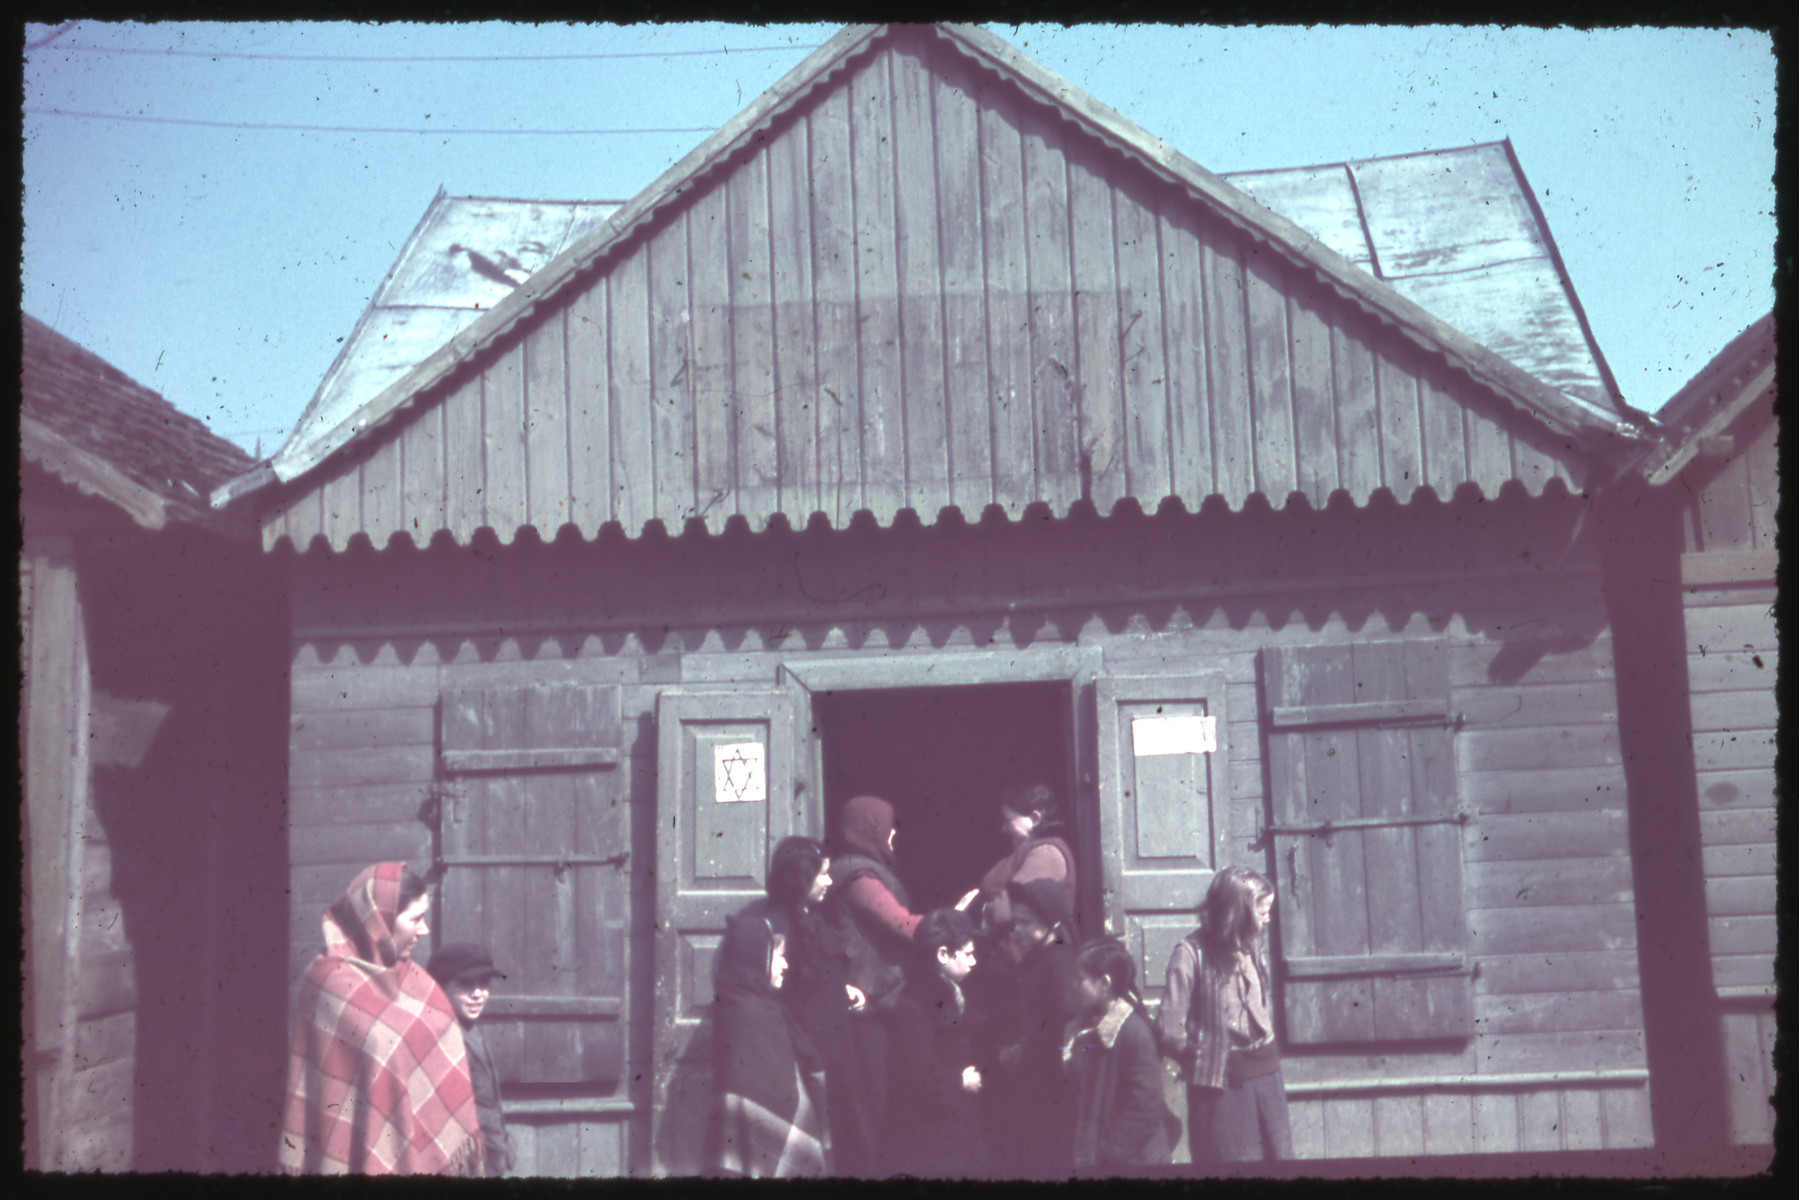 A group of women and children enter a wooden building marked with a Jewish star.